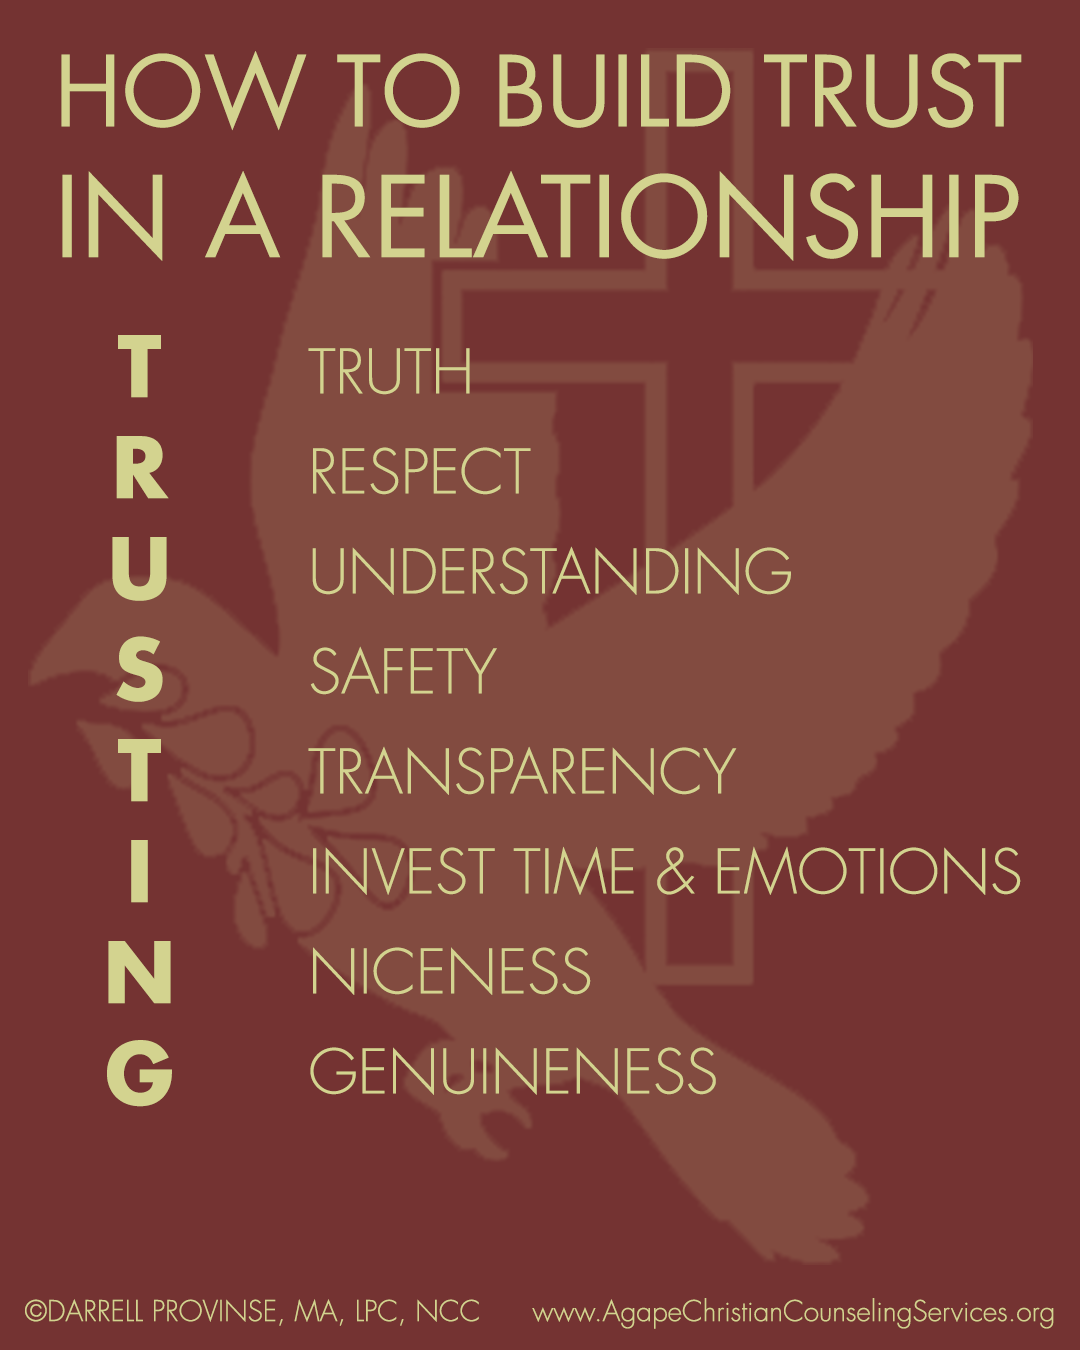 how-to-build-trust-in-your-relationship-infographic-agape-christian-counseling-services